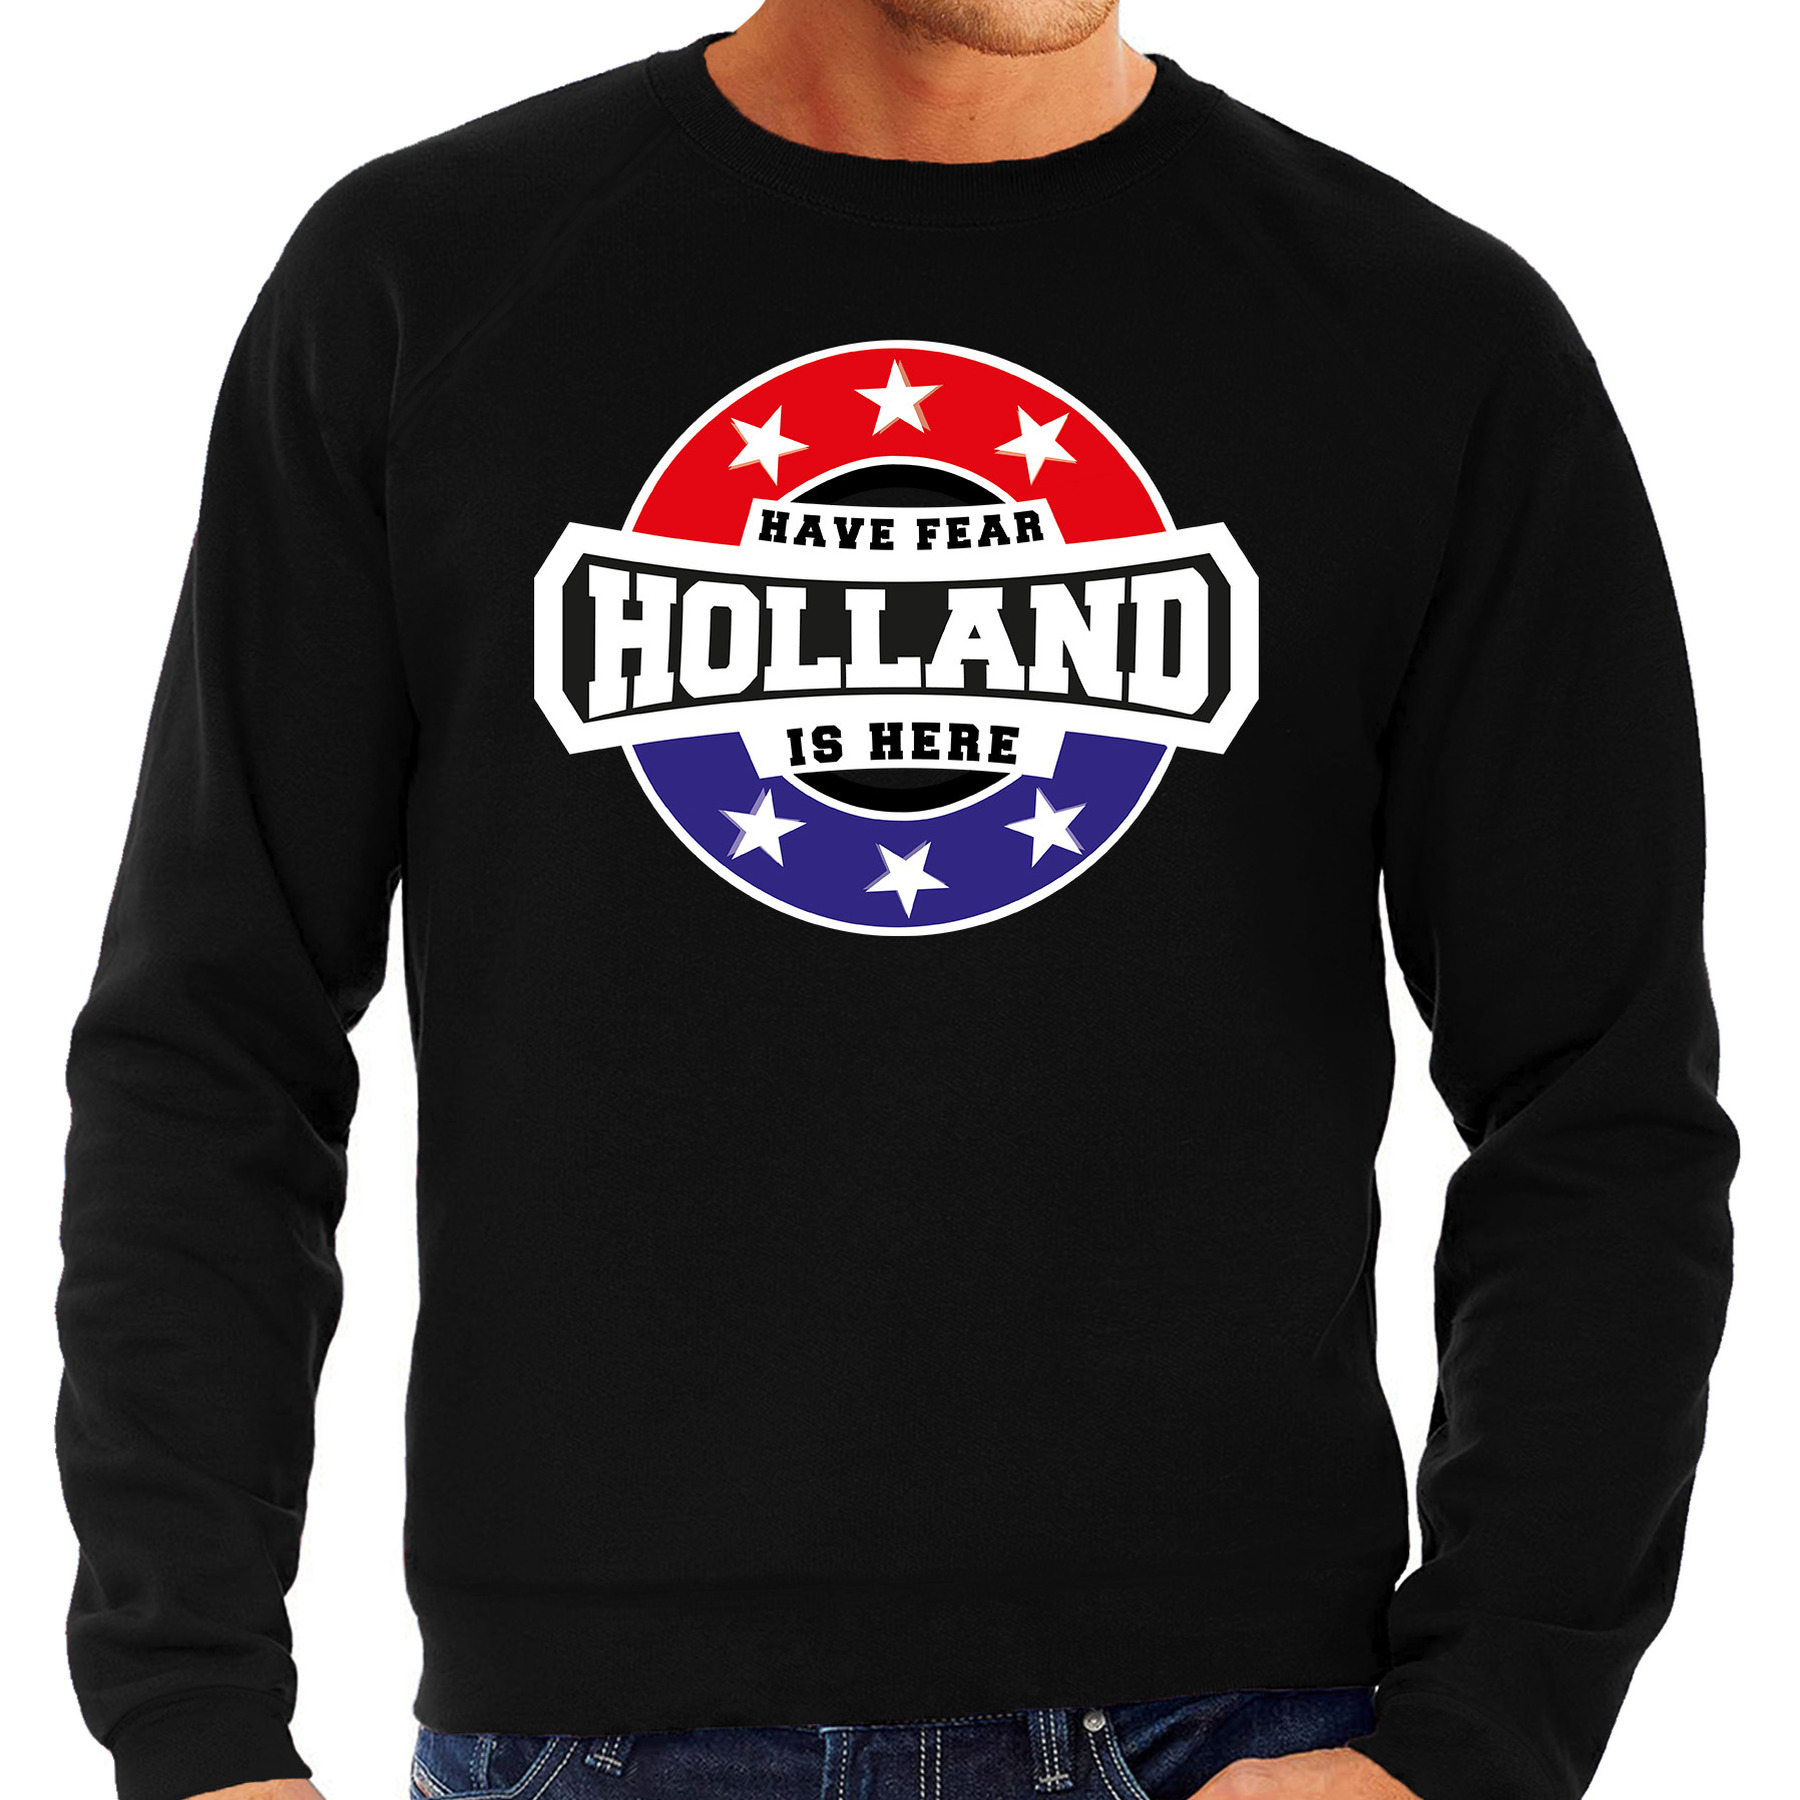 Have fear Holland is here - Holland supporter sweater zwart voor heren